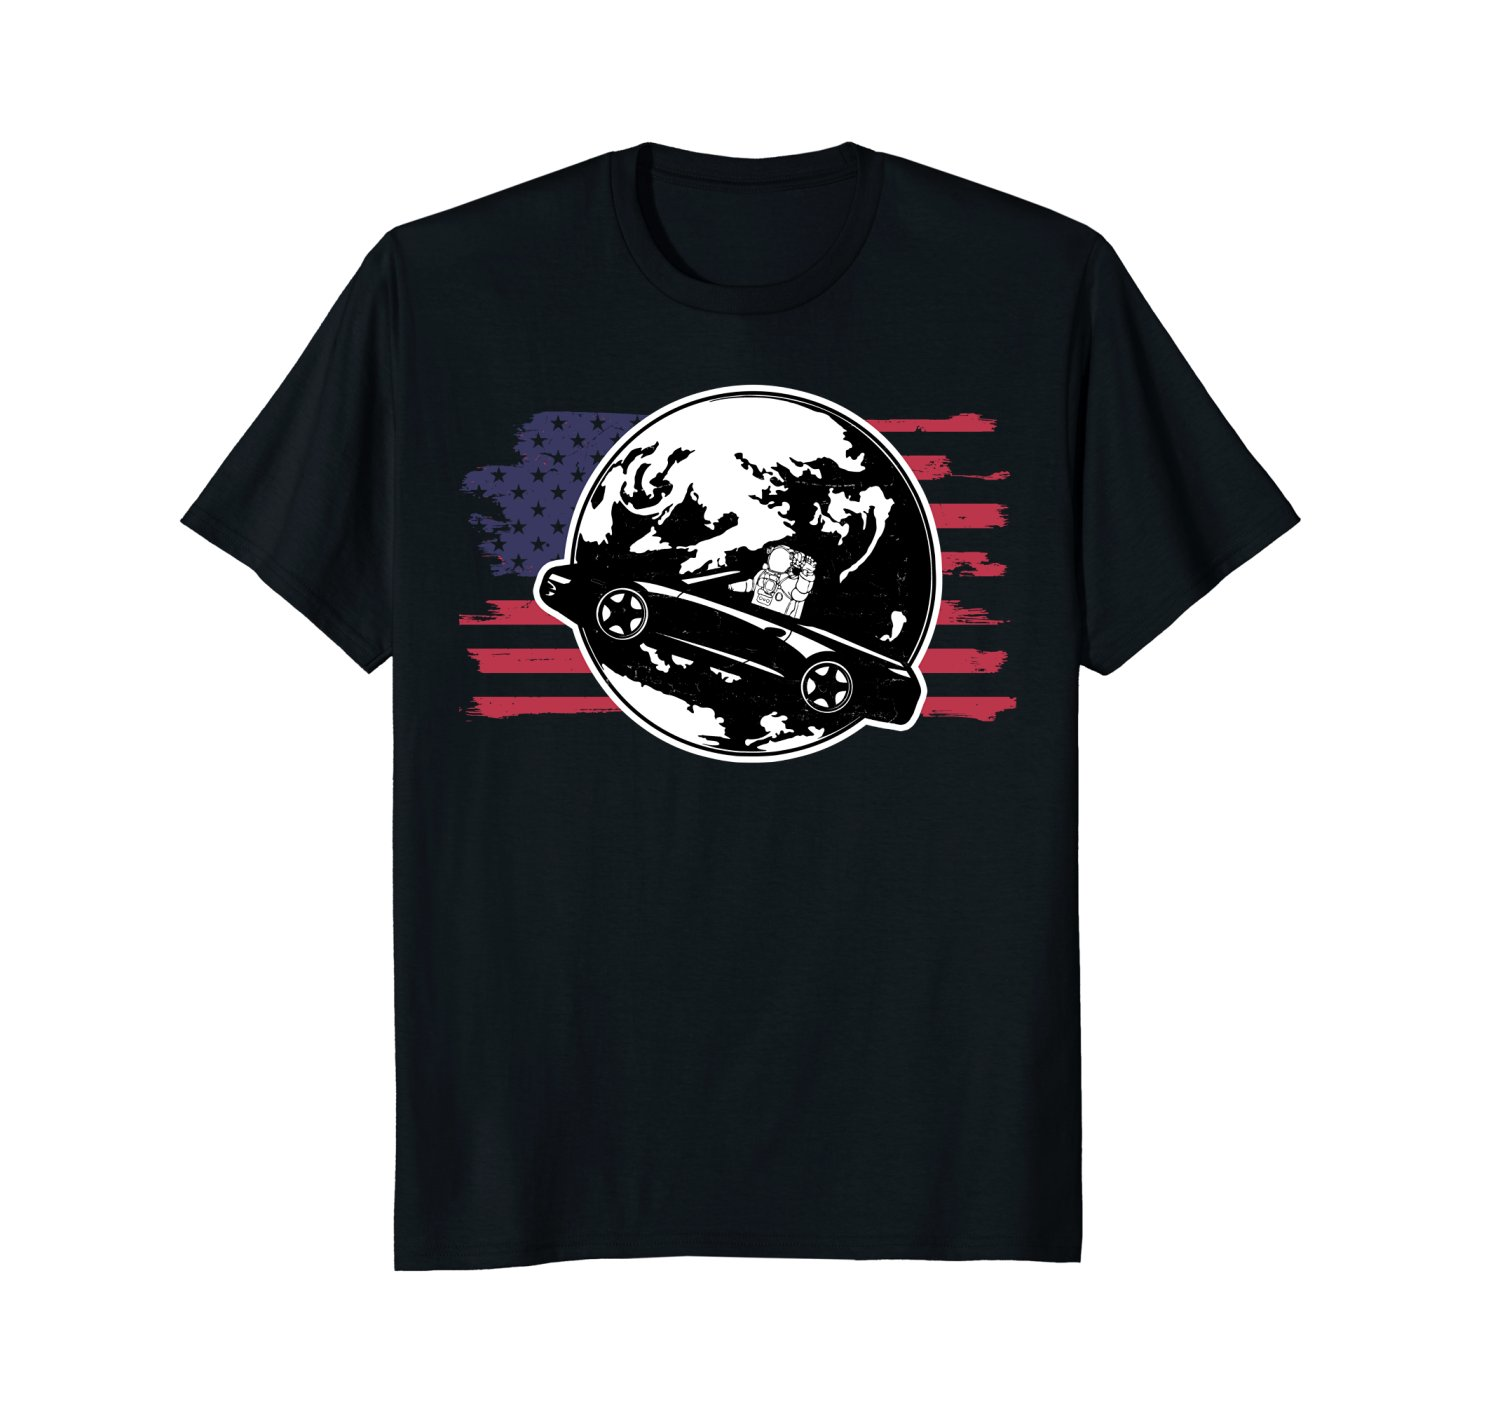 2018 New Cool Tee Shirt American Car In Space Dont Panic Shirt Fashion Cotton T-shirt